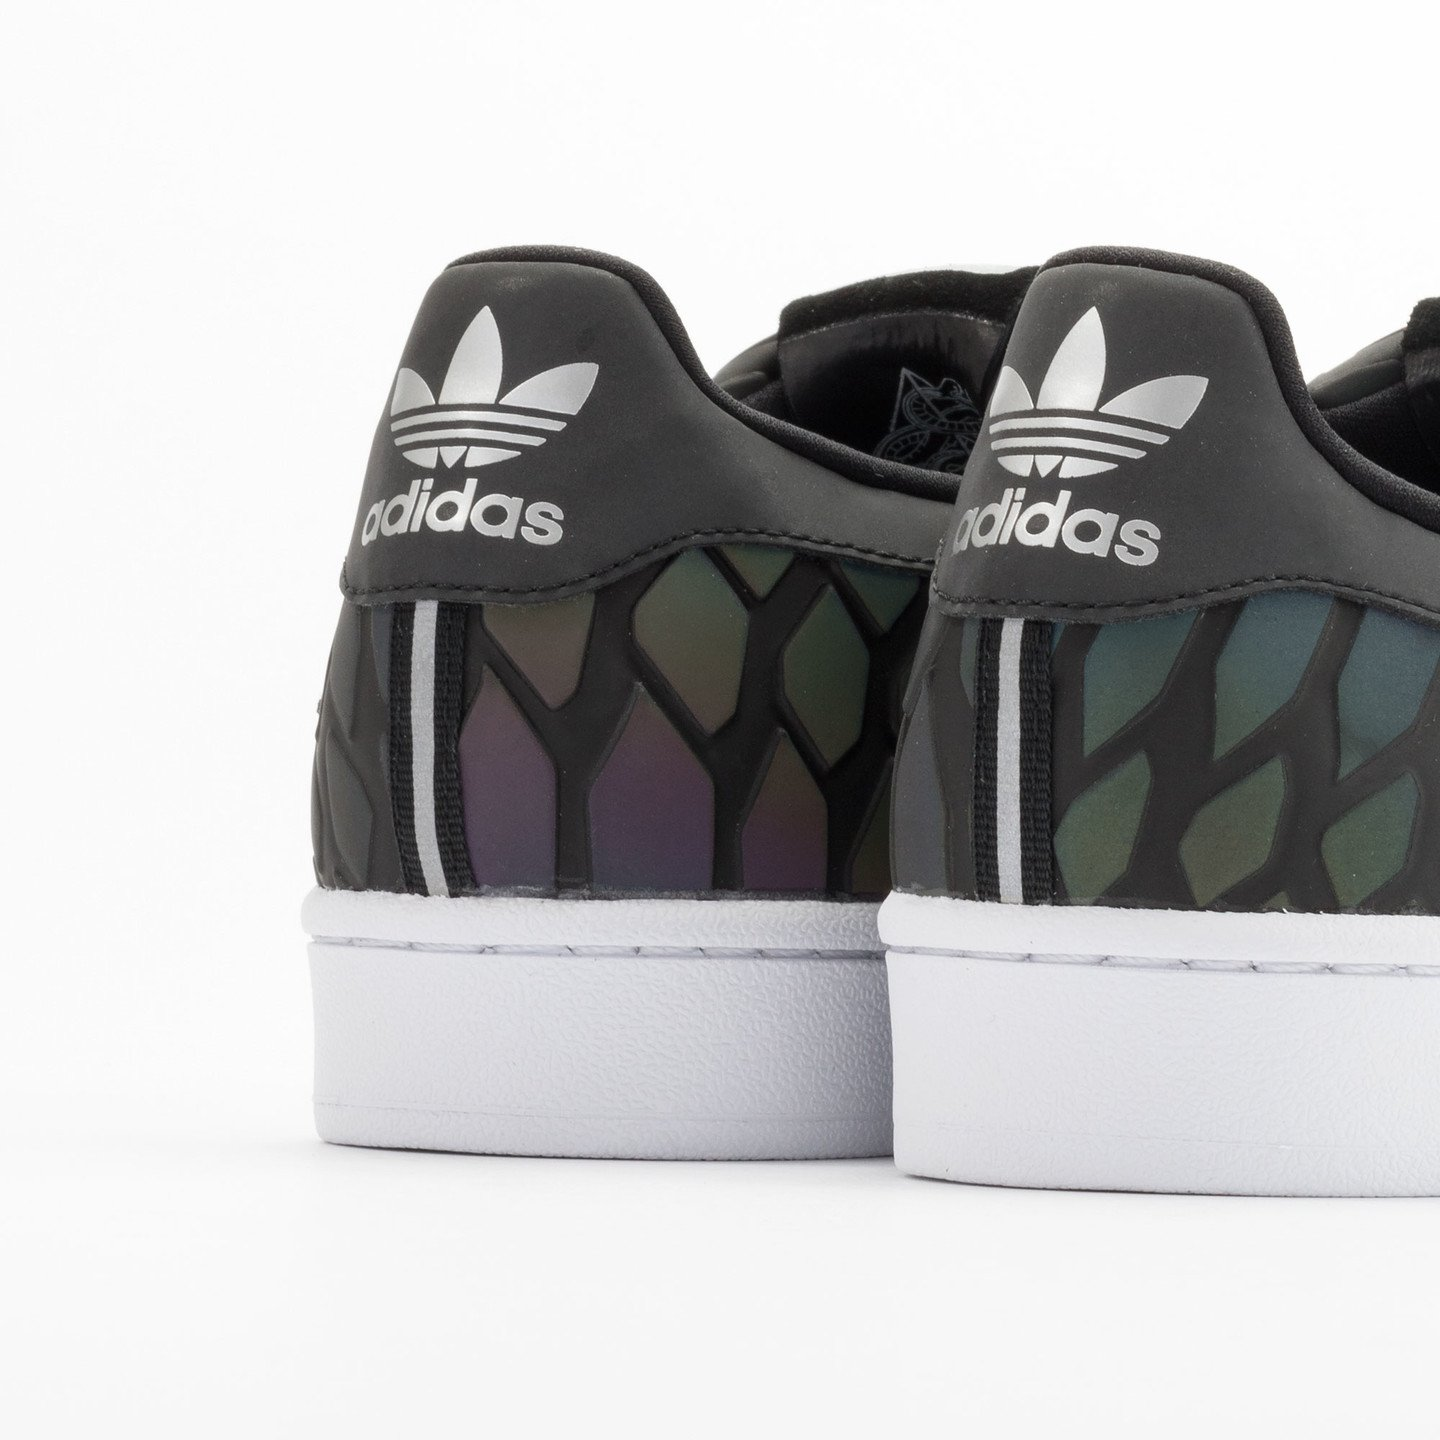 Adidas Superstar Xeno Pack Cblack / Supcol / Ftwwht D69366-39.33